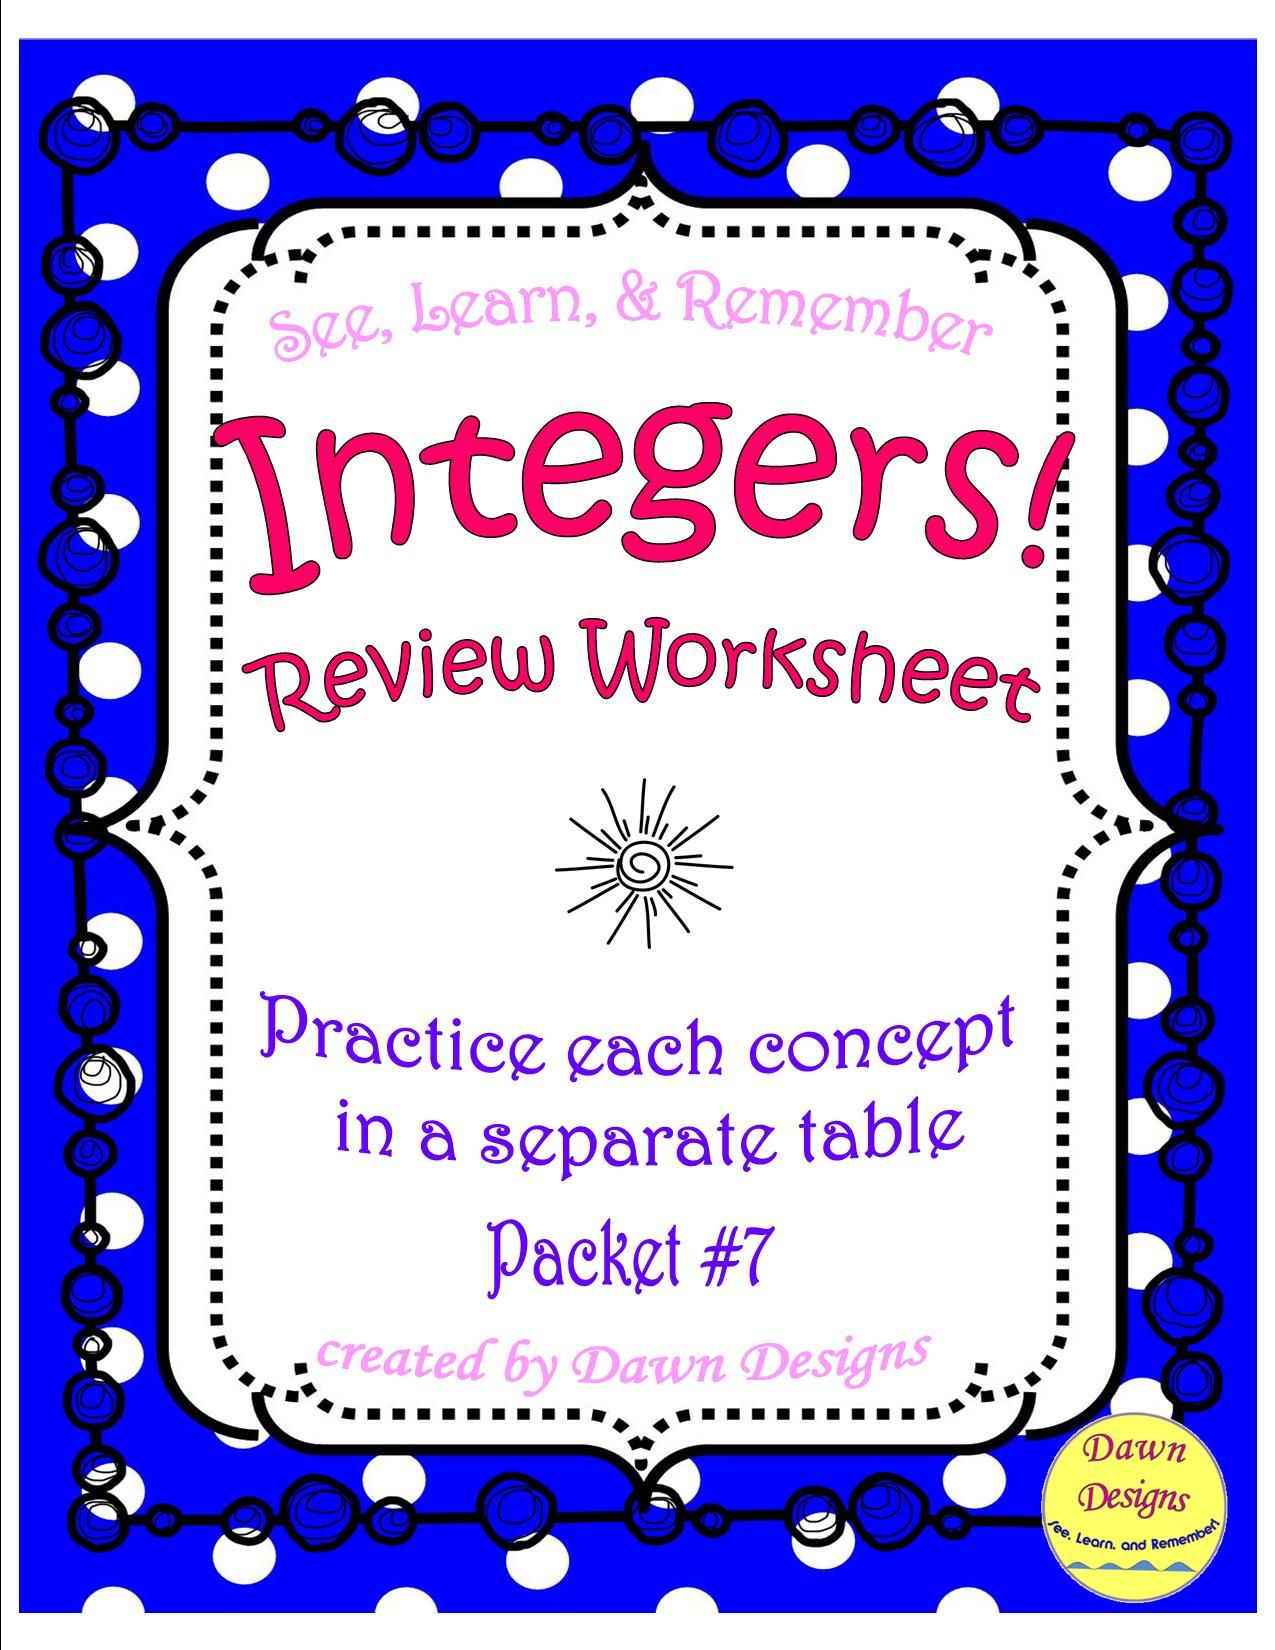 Review Integer Operations Practice Each Concept In Different Table For Adding With Same Sign A Adding And Subtracting Integers Integers Worksheet Subtraction